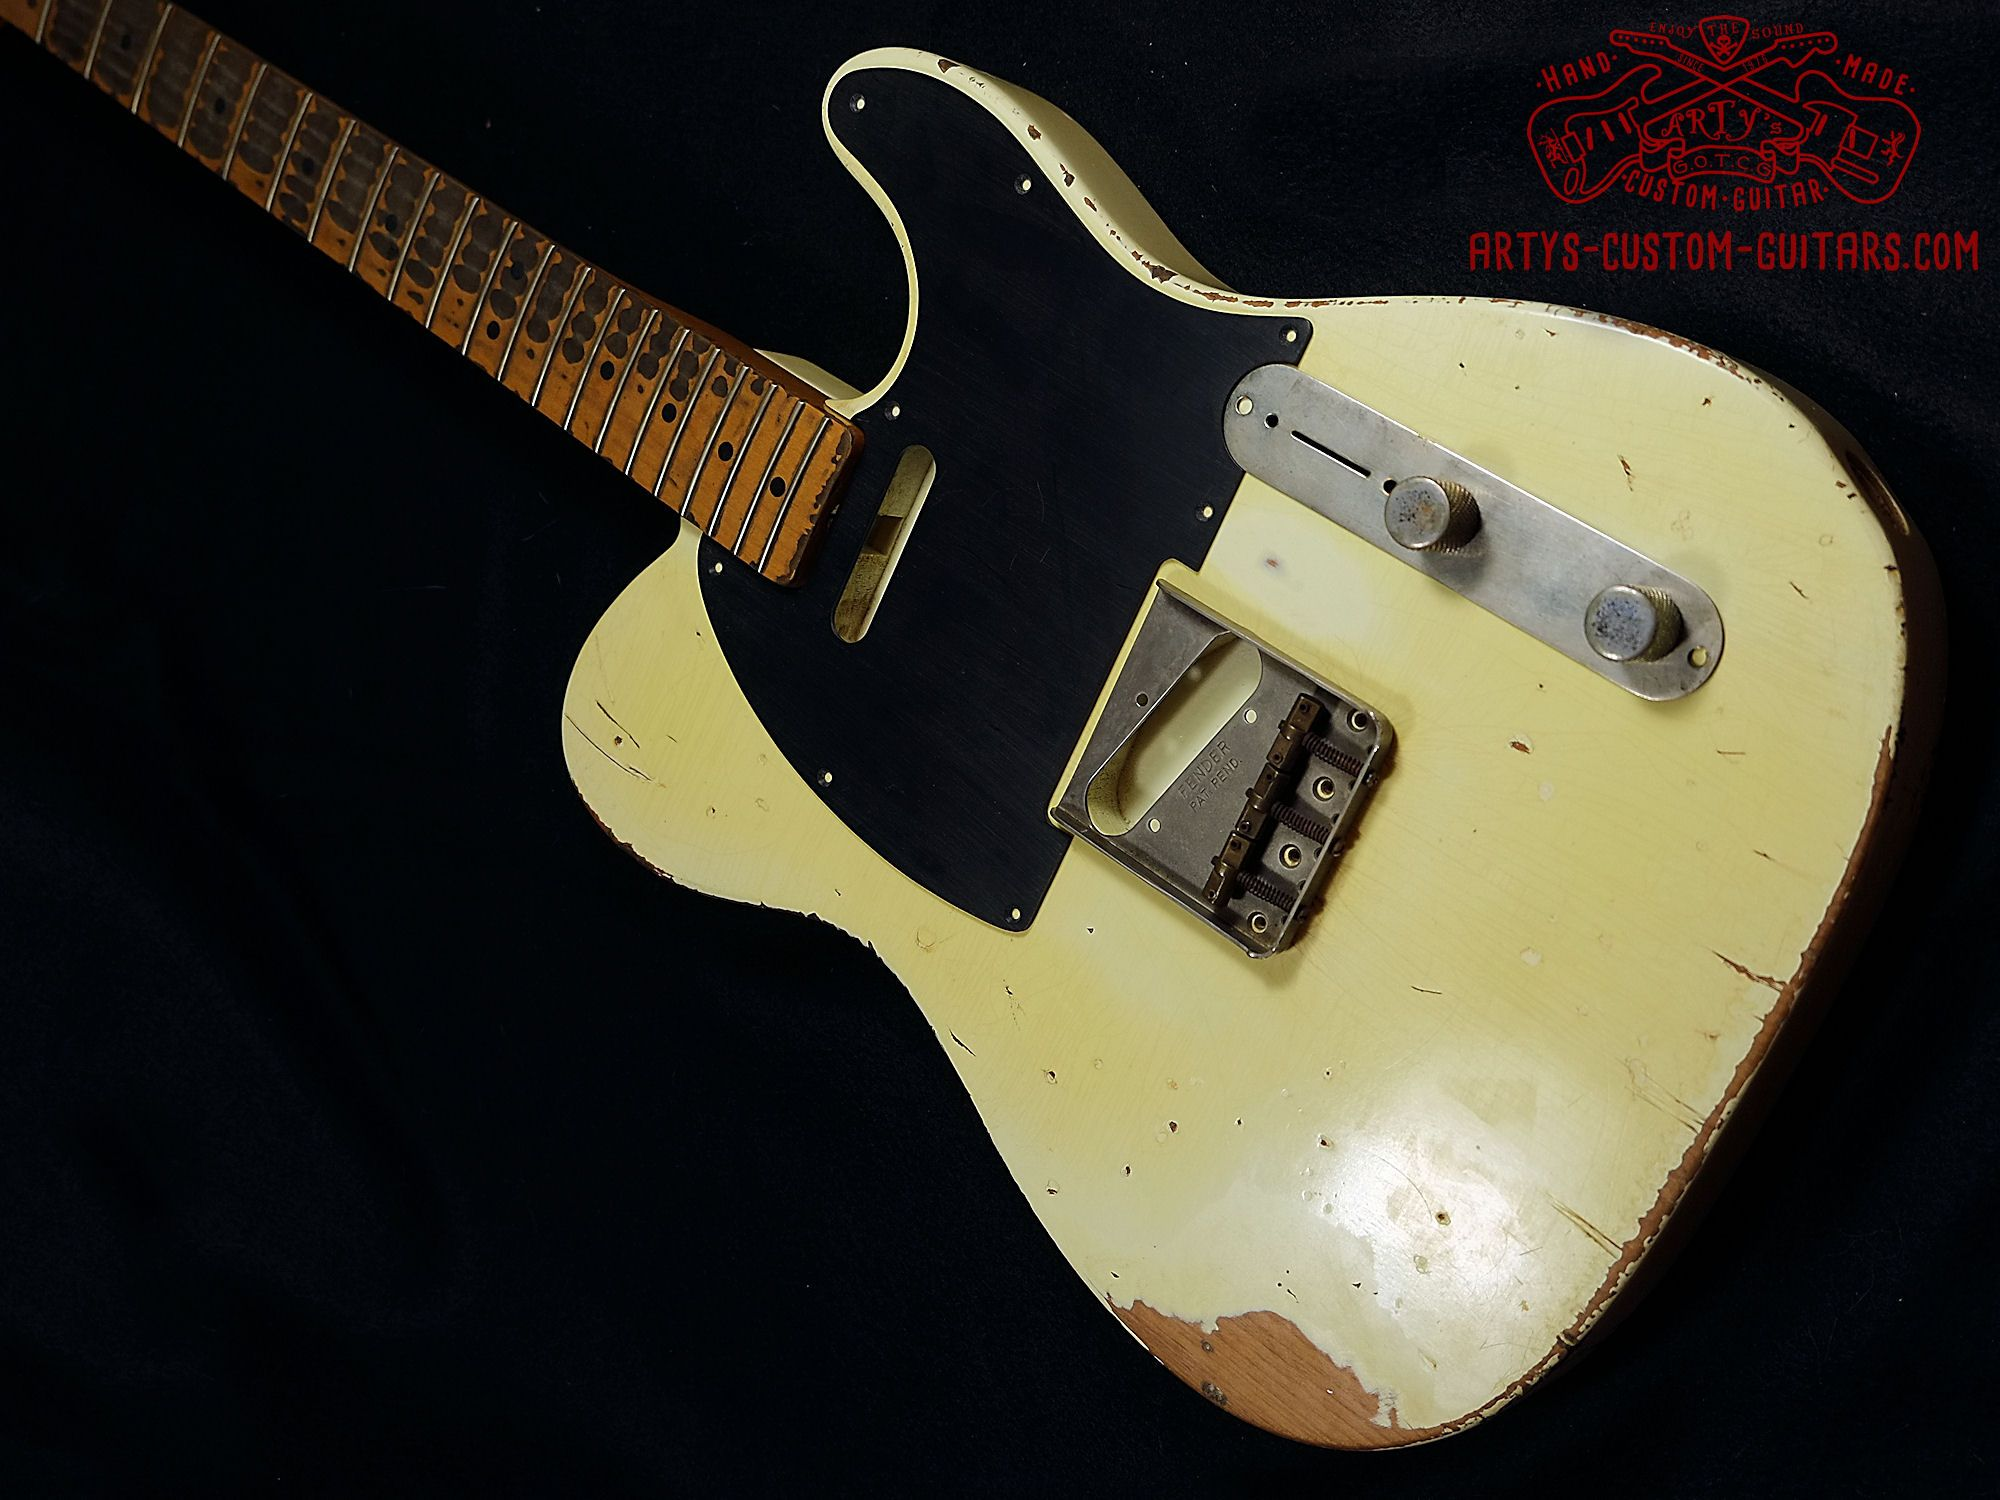 medium resolution of arty s relic aged custom shop guitars gallery prewired kit harness assembly wiring diagram telecaster stratocaster p bass j bass les paul jr